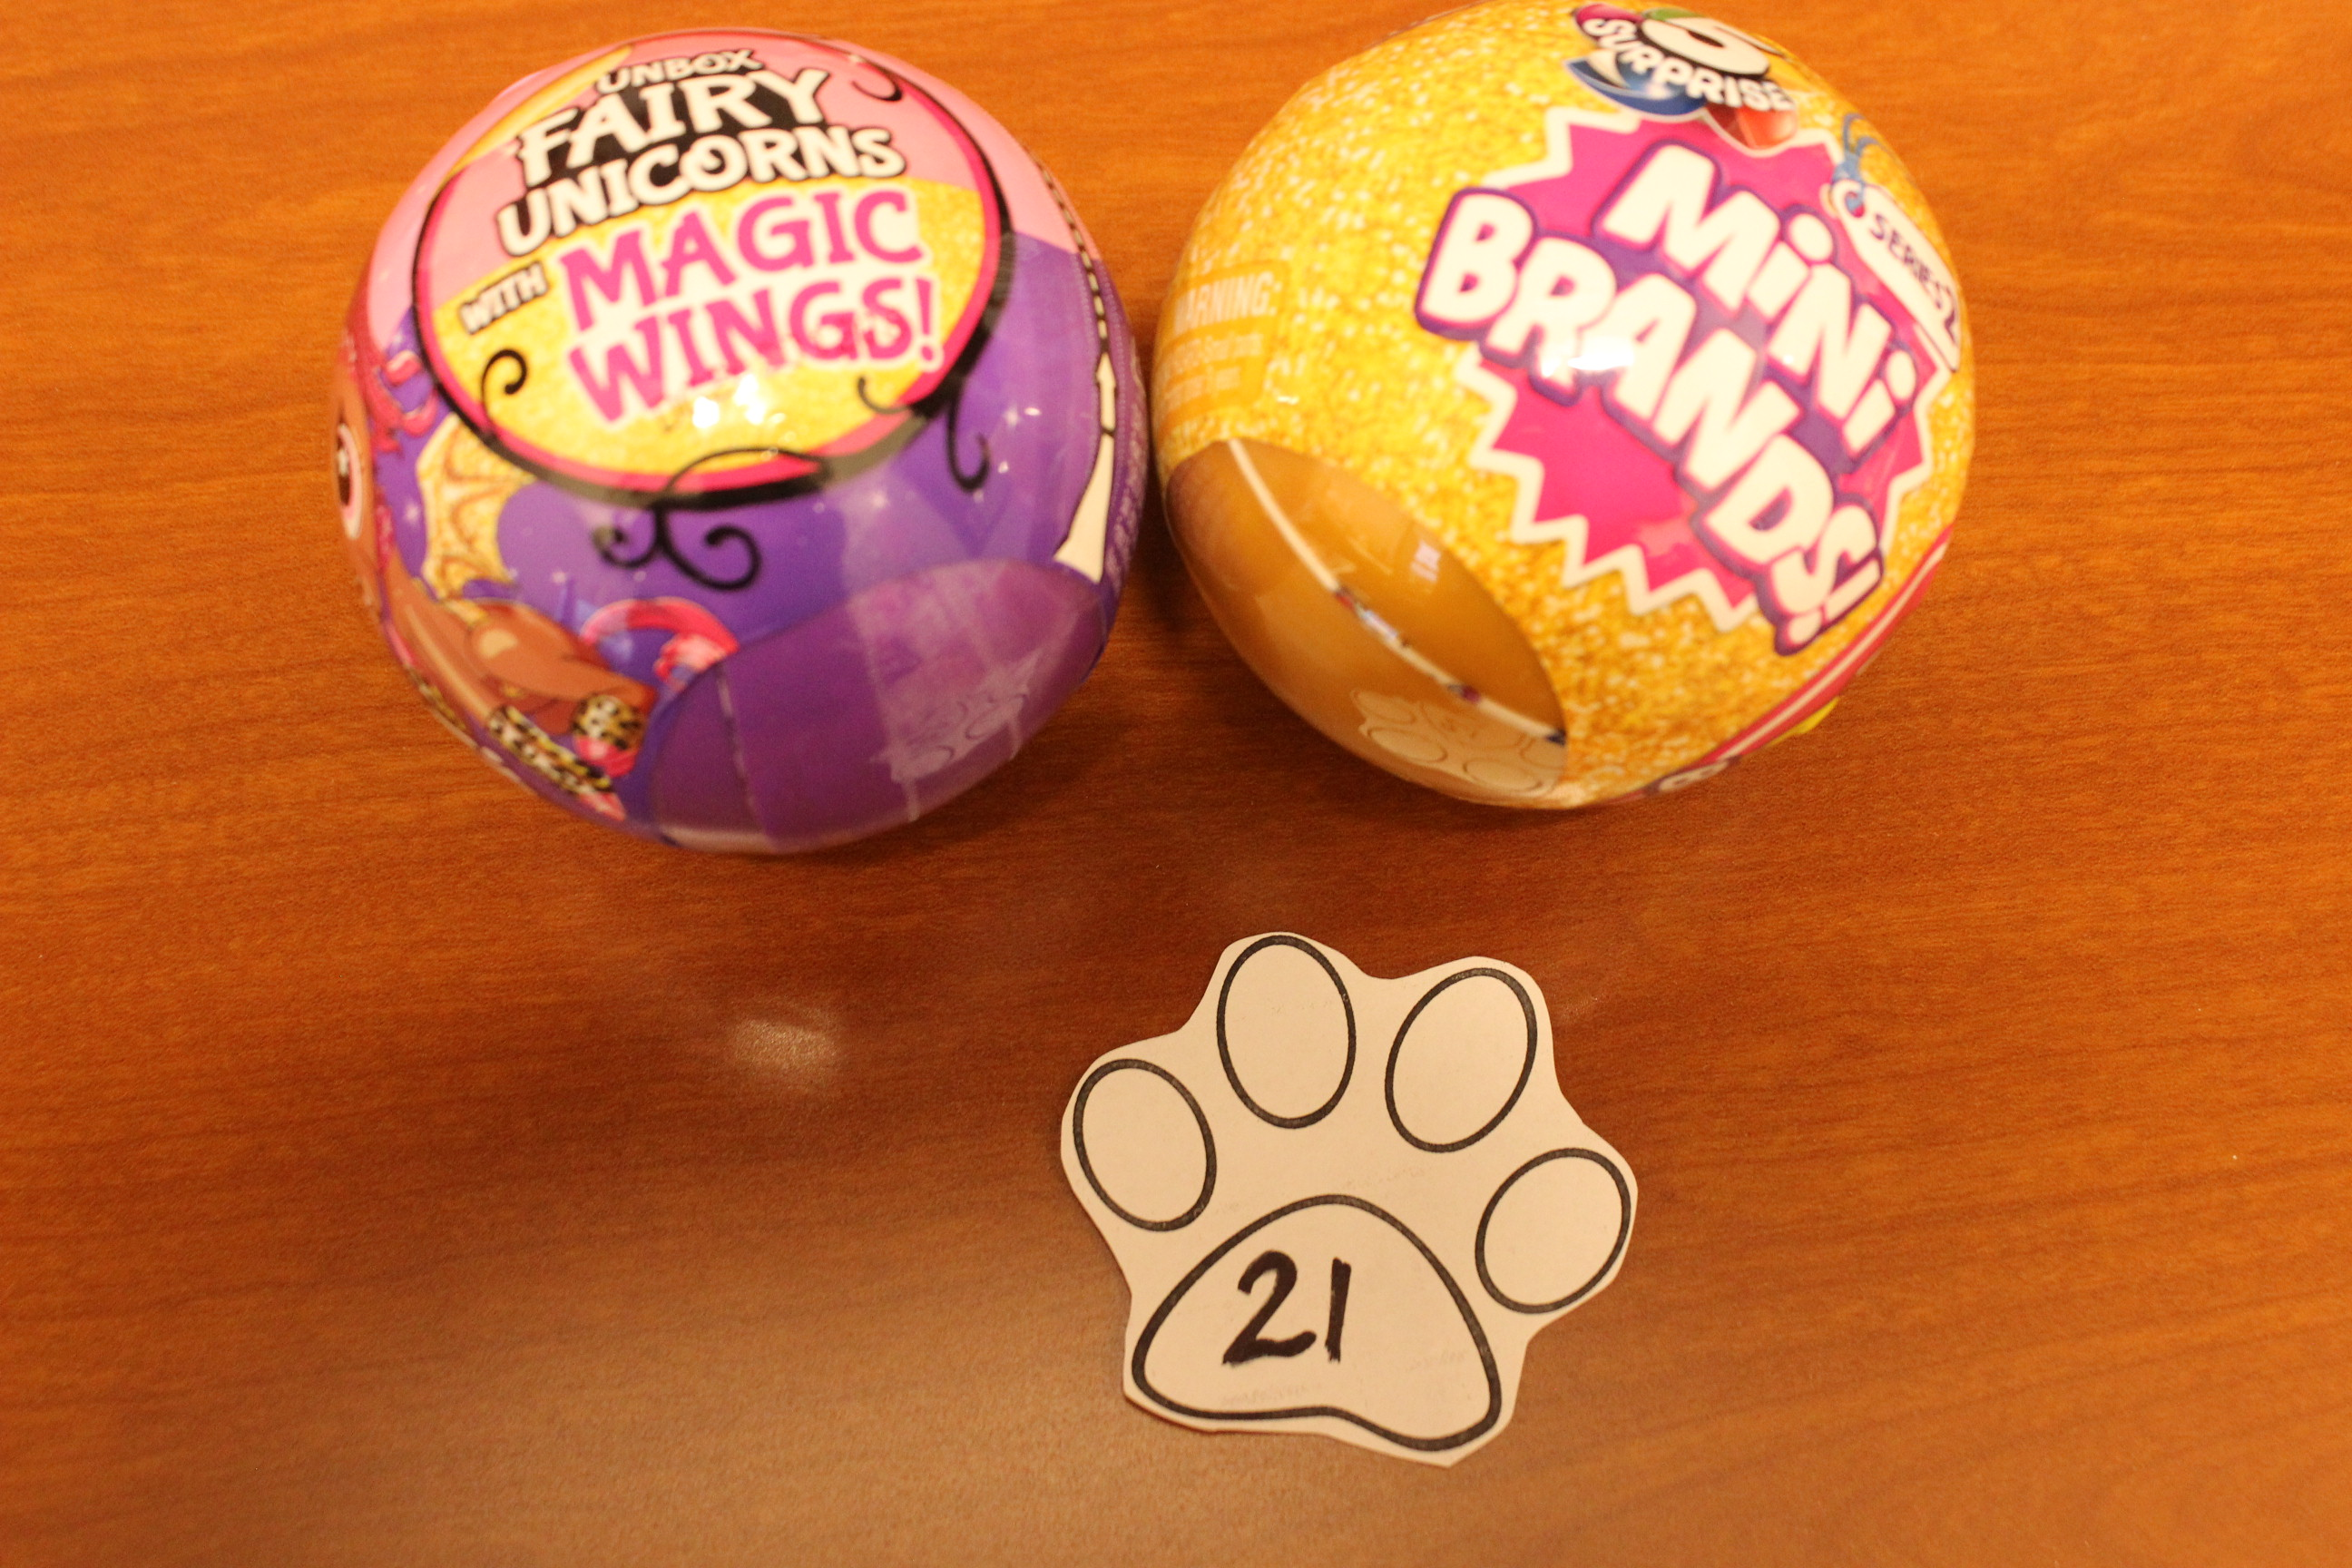 21 Paws Fairy Unicorns or Mini Brands